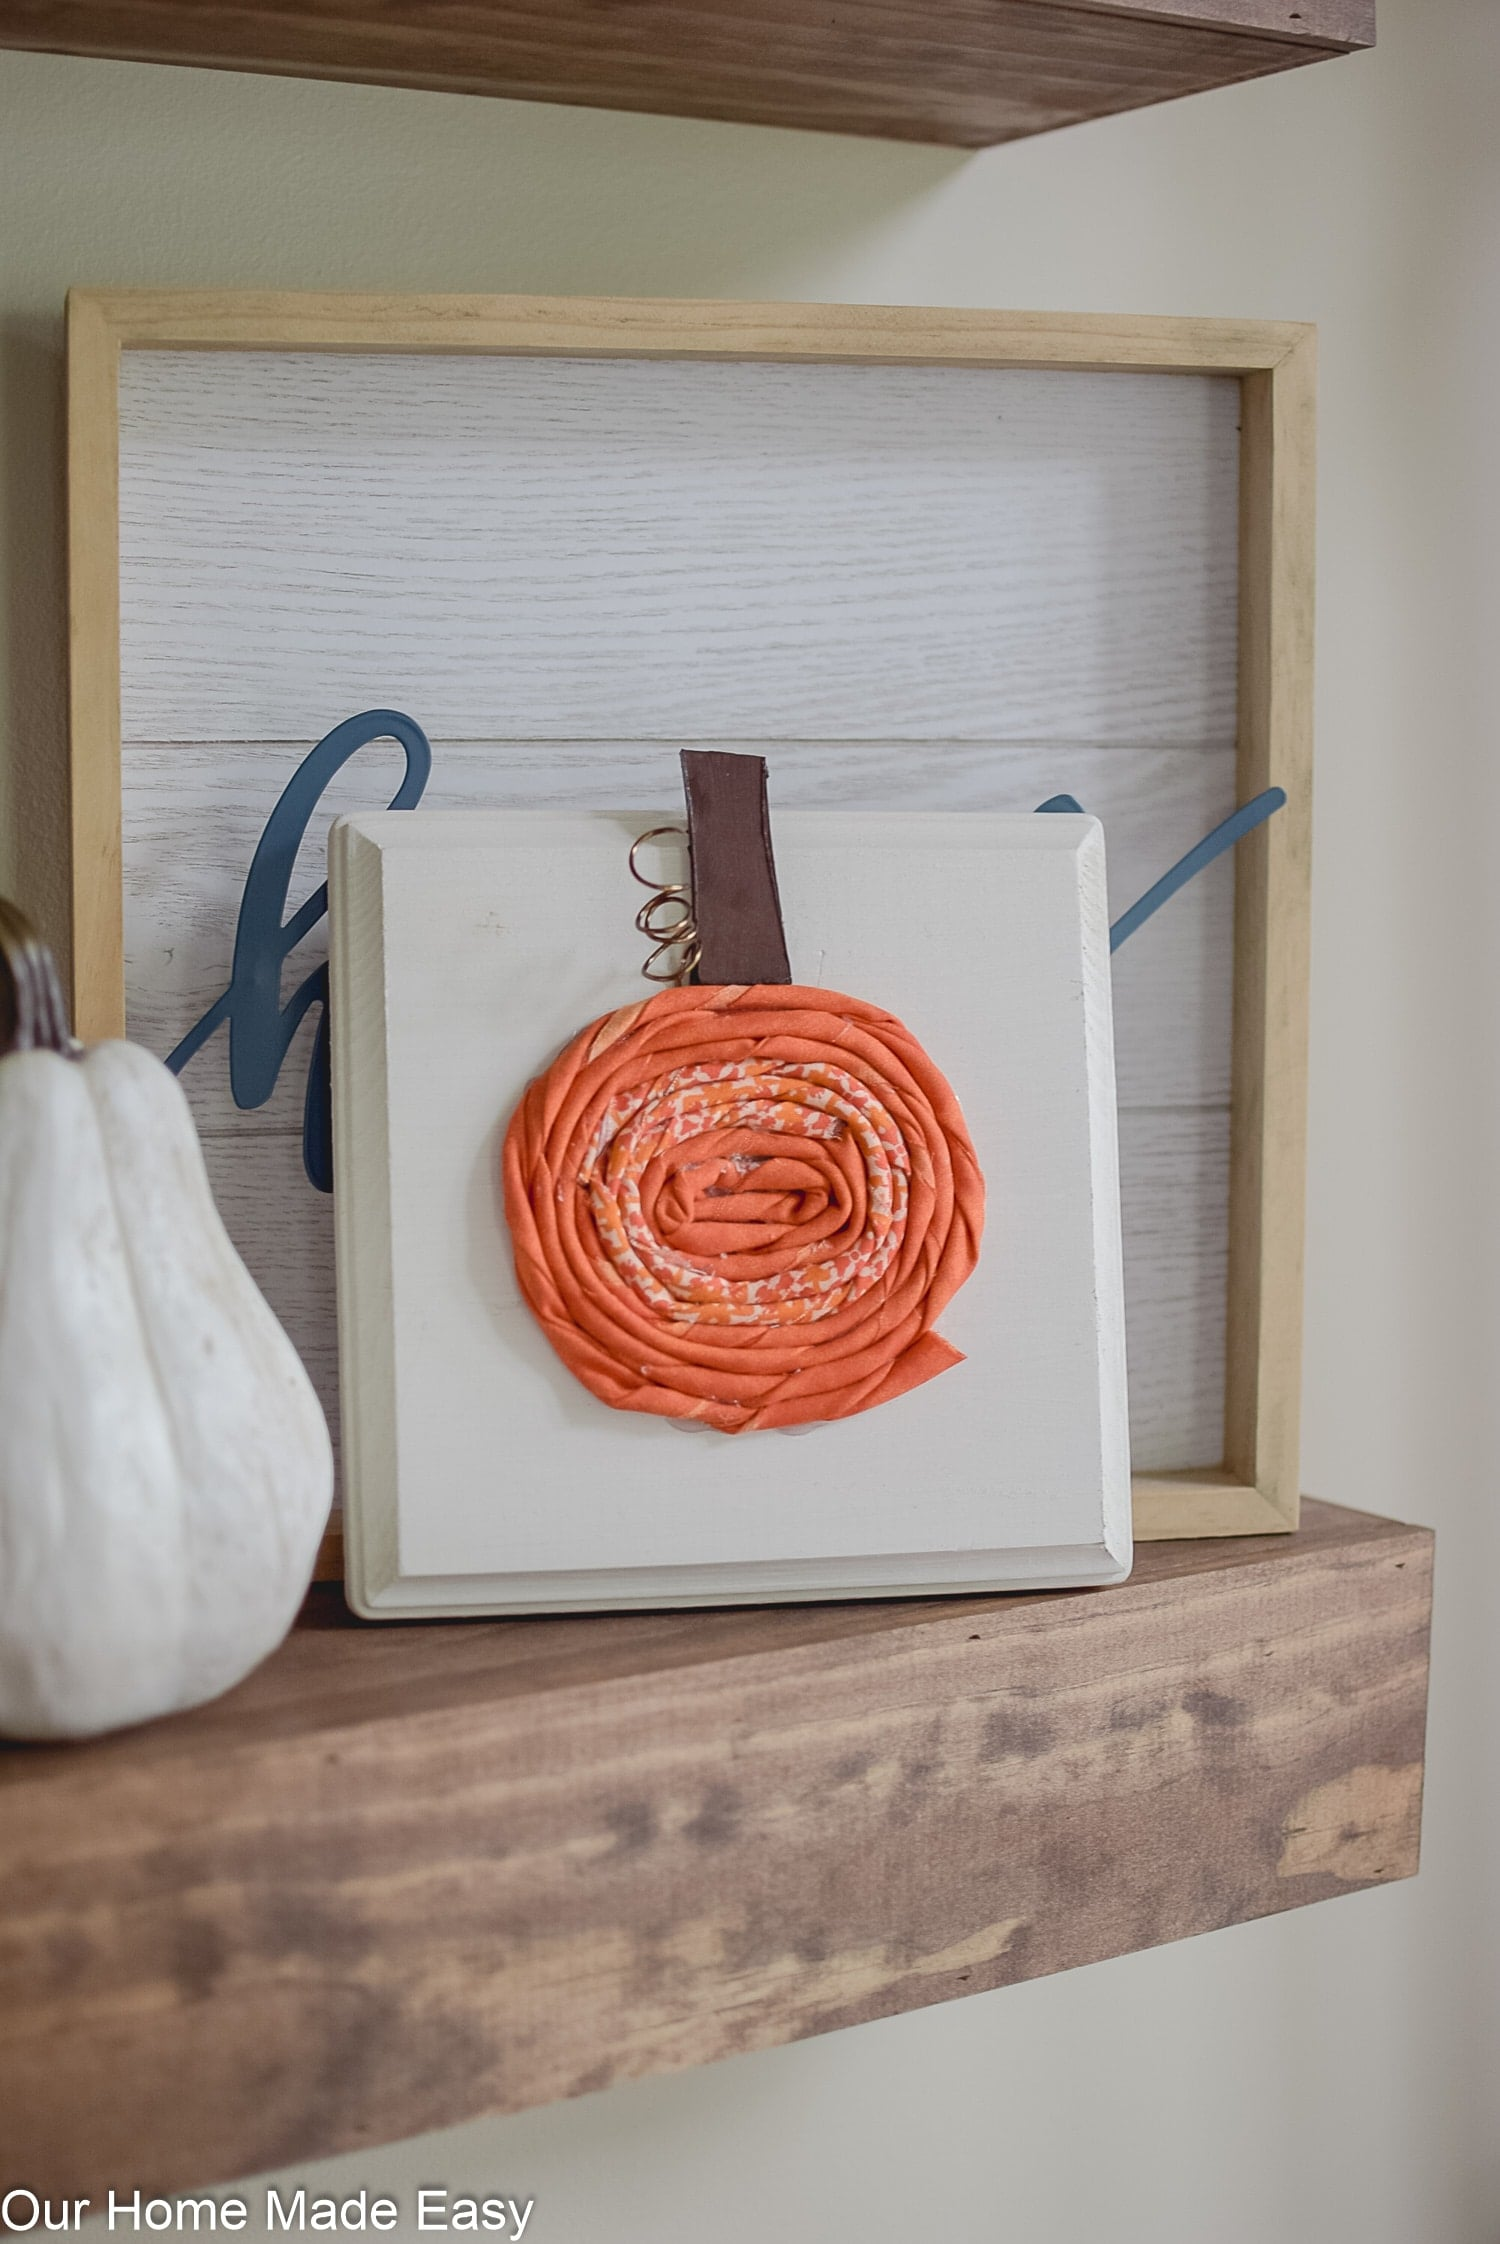 1-Hour Fall Craft Ideas: These fabric pumpkins are an easy DIY craft that adds a cute fall touch!